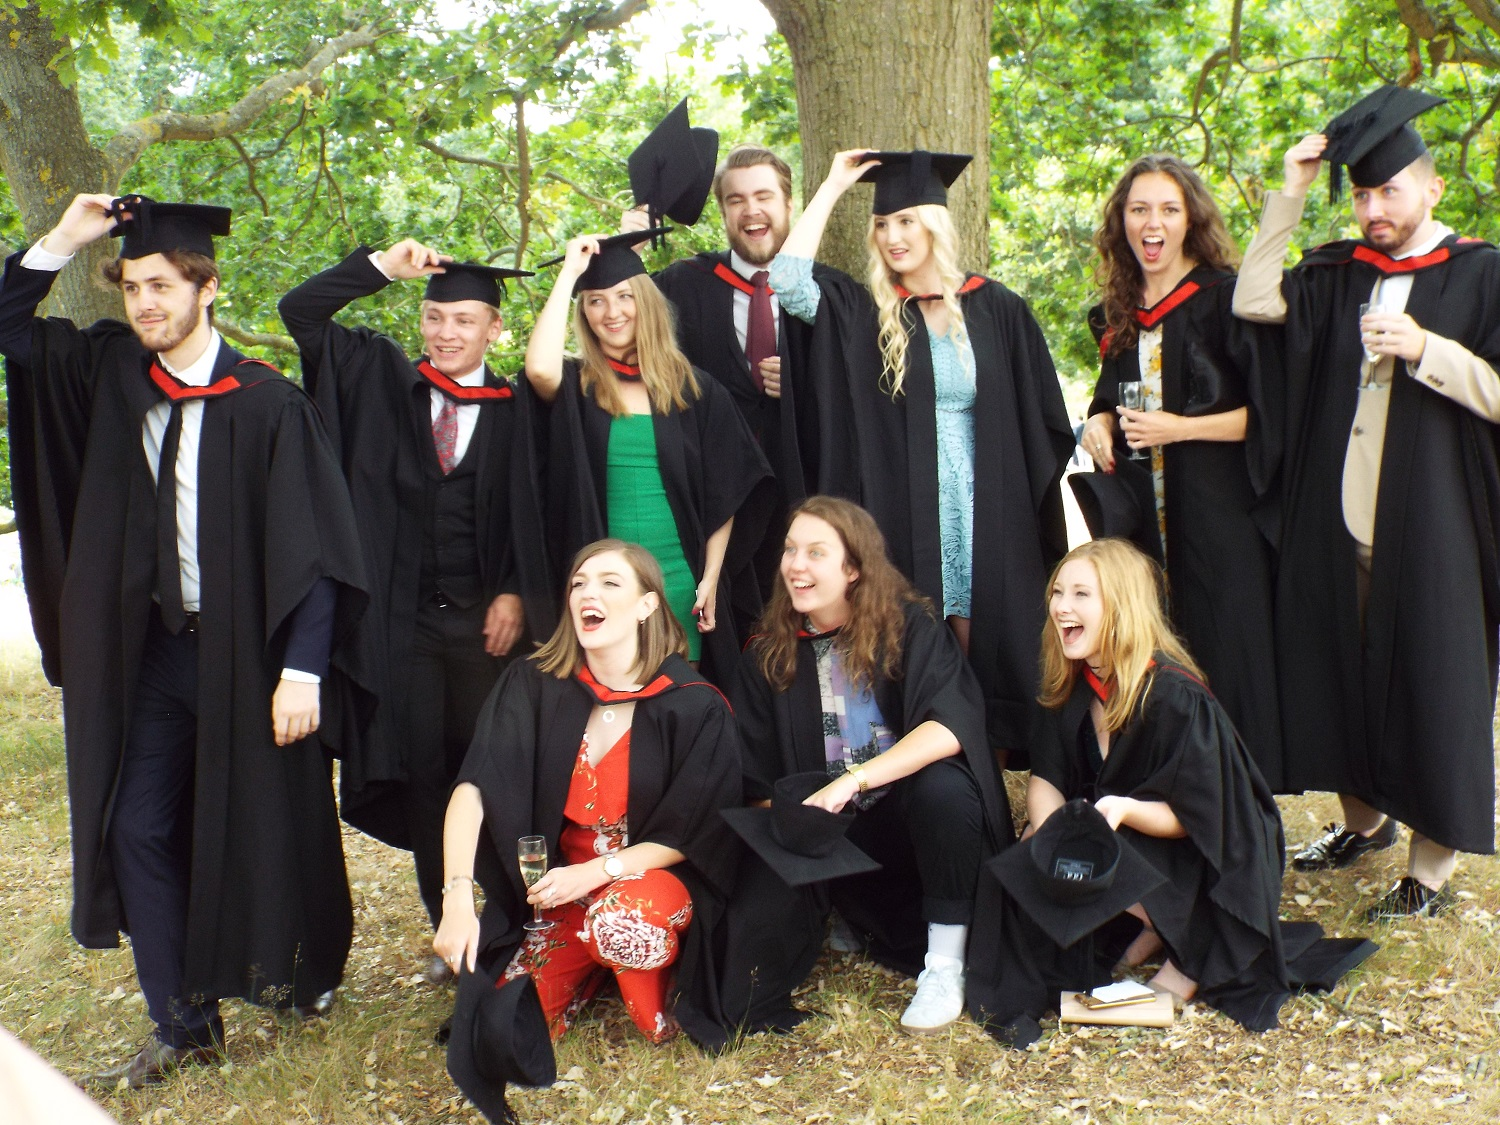 Freed from the captivity of their hutches, the young graduates feel the warm earth under their feet for the first time in years